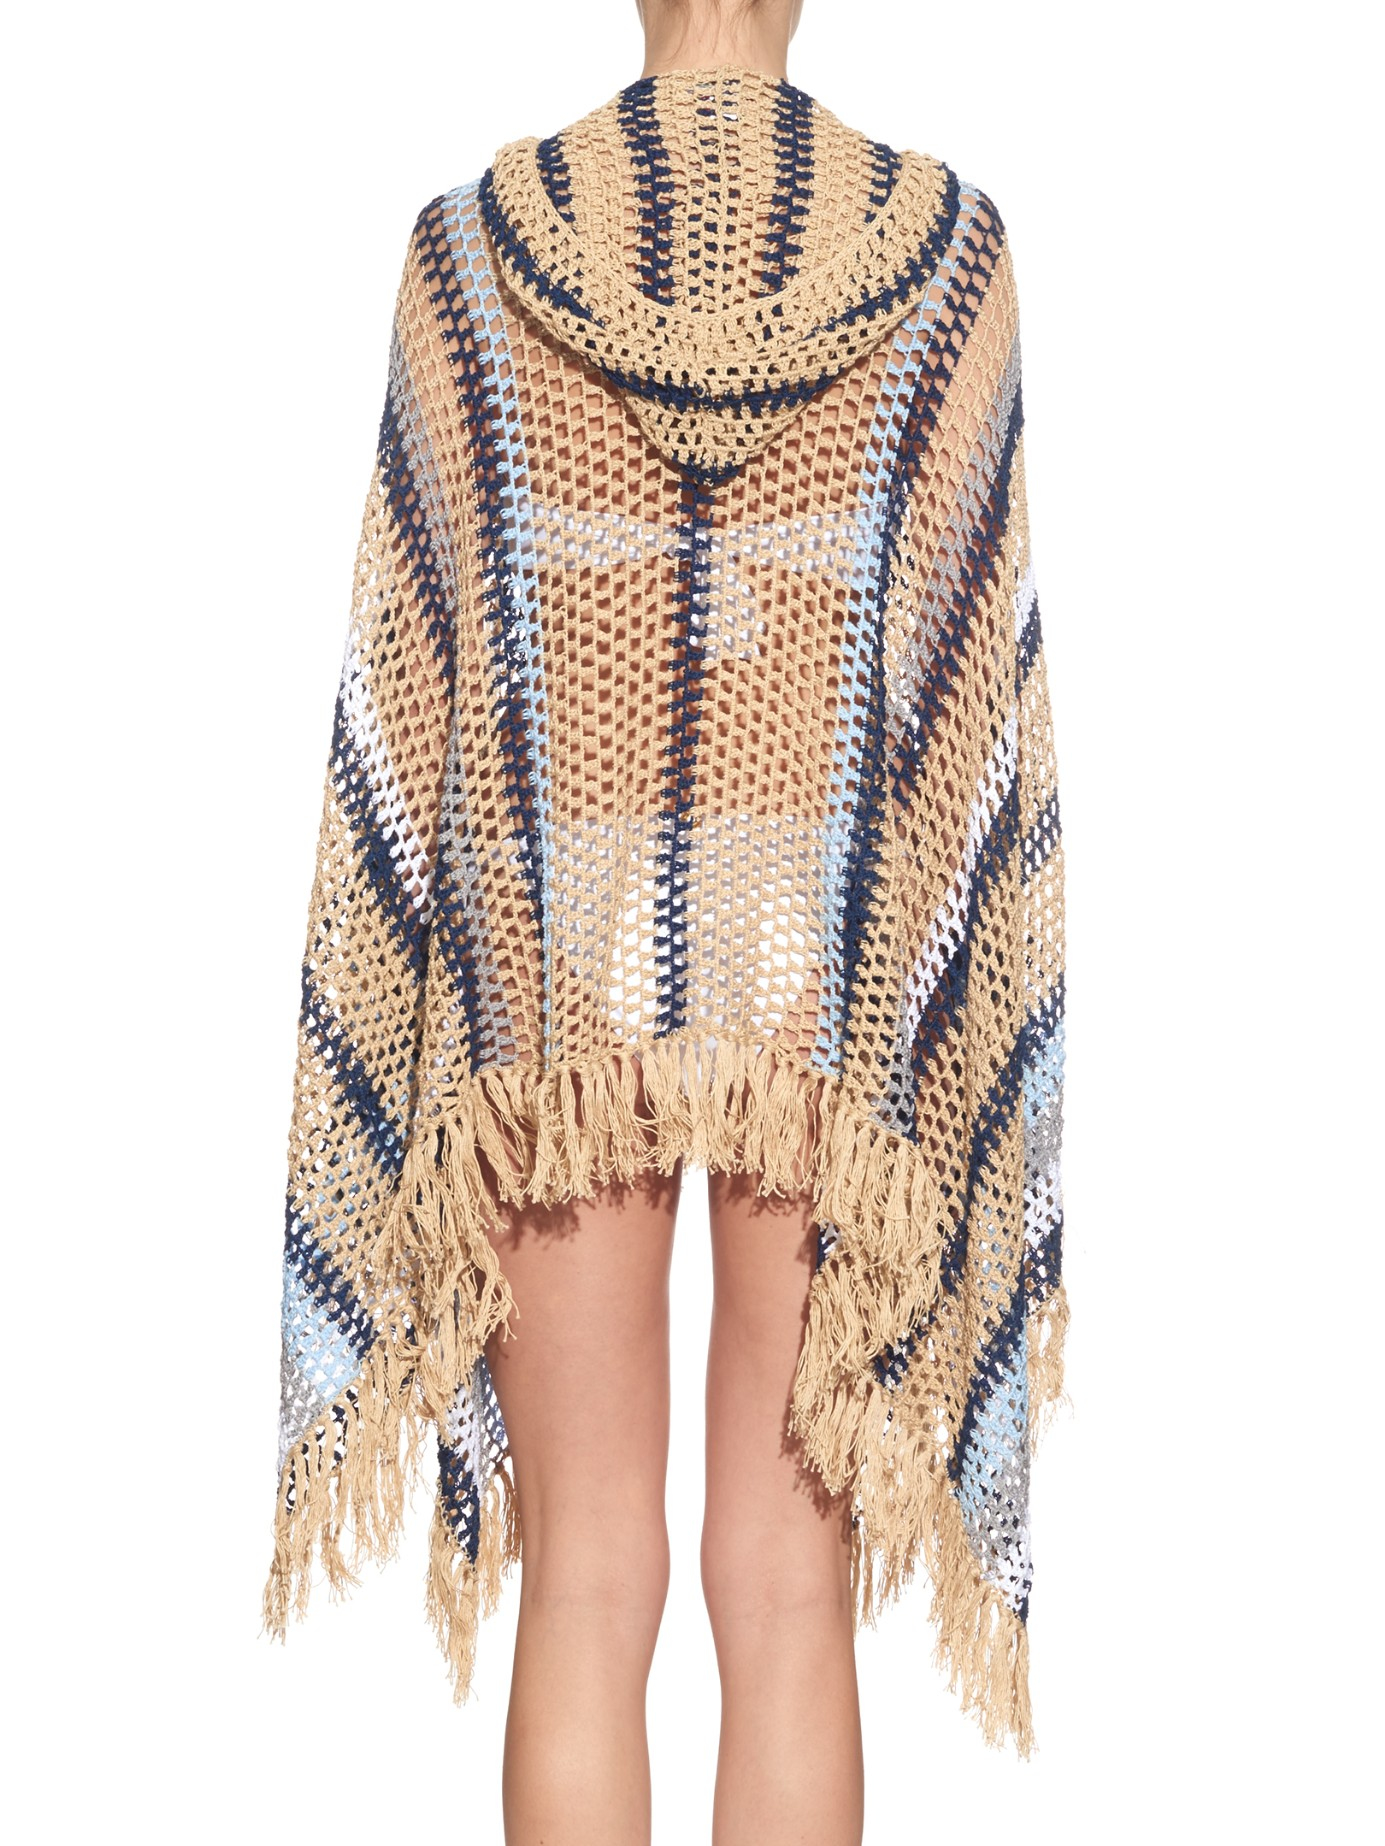 Lyst - Anna Kosturova Baja Hooded Crochet Poncho in Blue